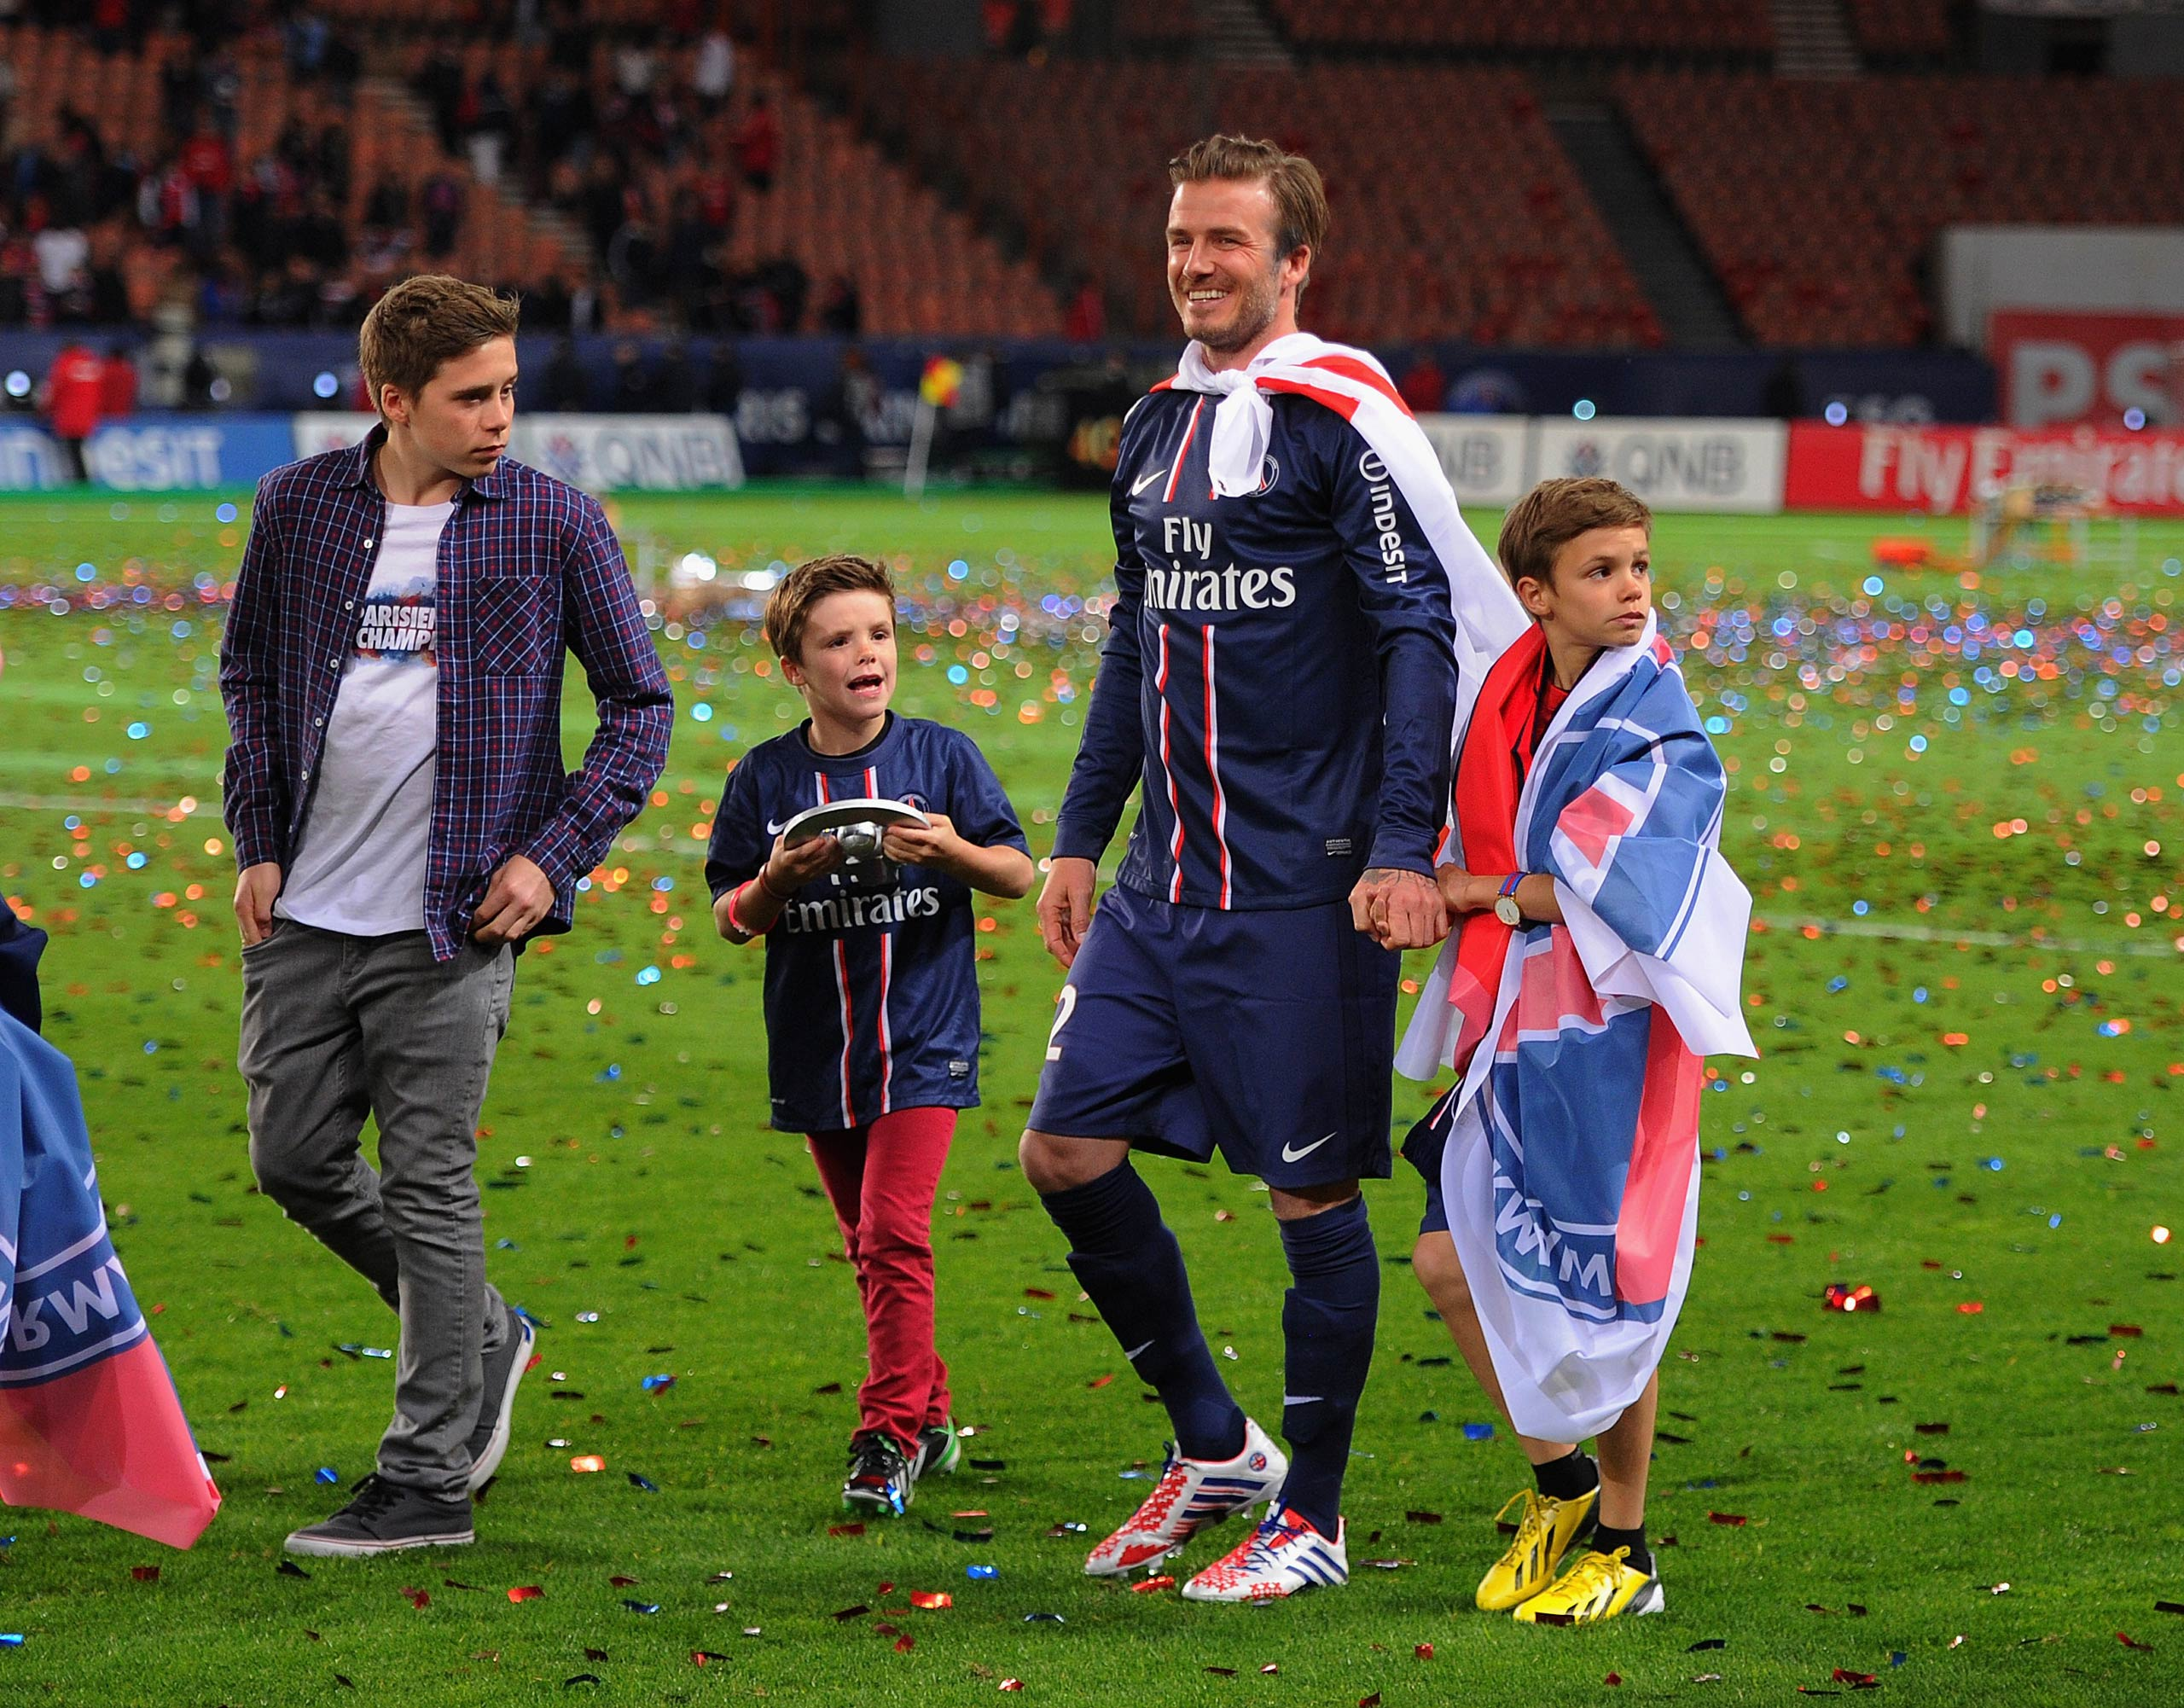 David Beckham waves to the crowd with his sons, Brooklyn, Romeo and Cruz during his final soccer game, a French L1 soccer match between Paris St. Germain and Brest at Parc des Princes stadium in Paris in 2013.